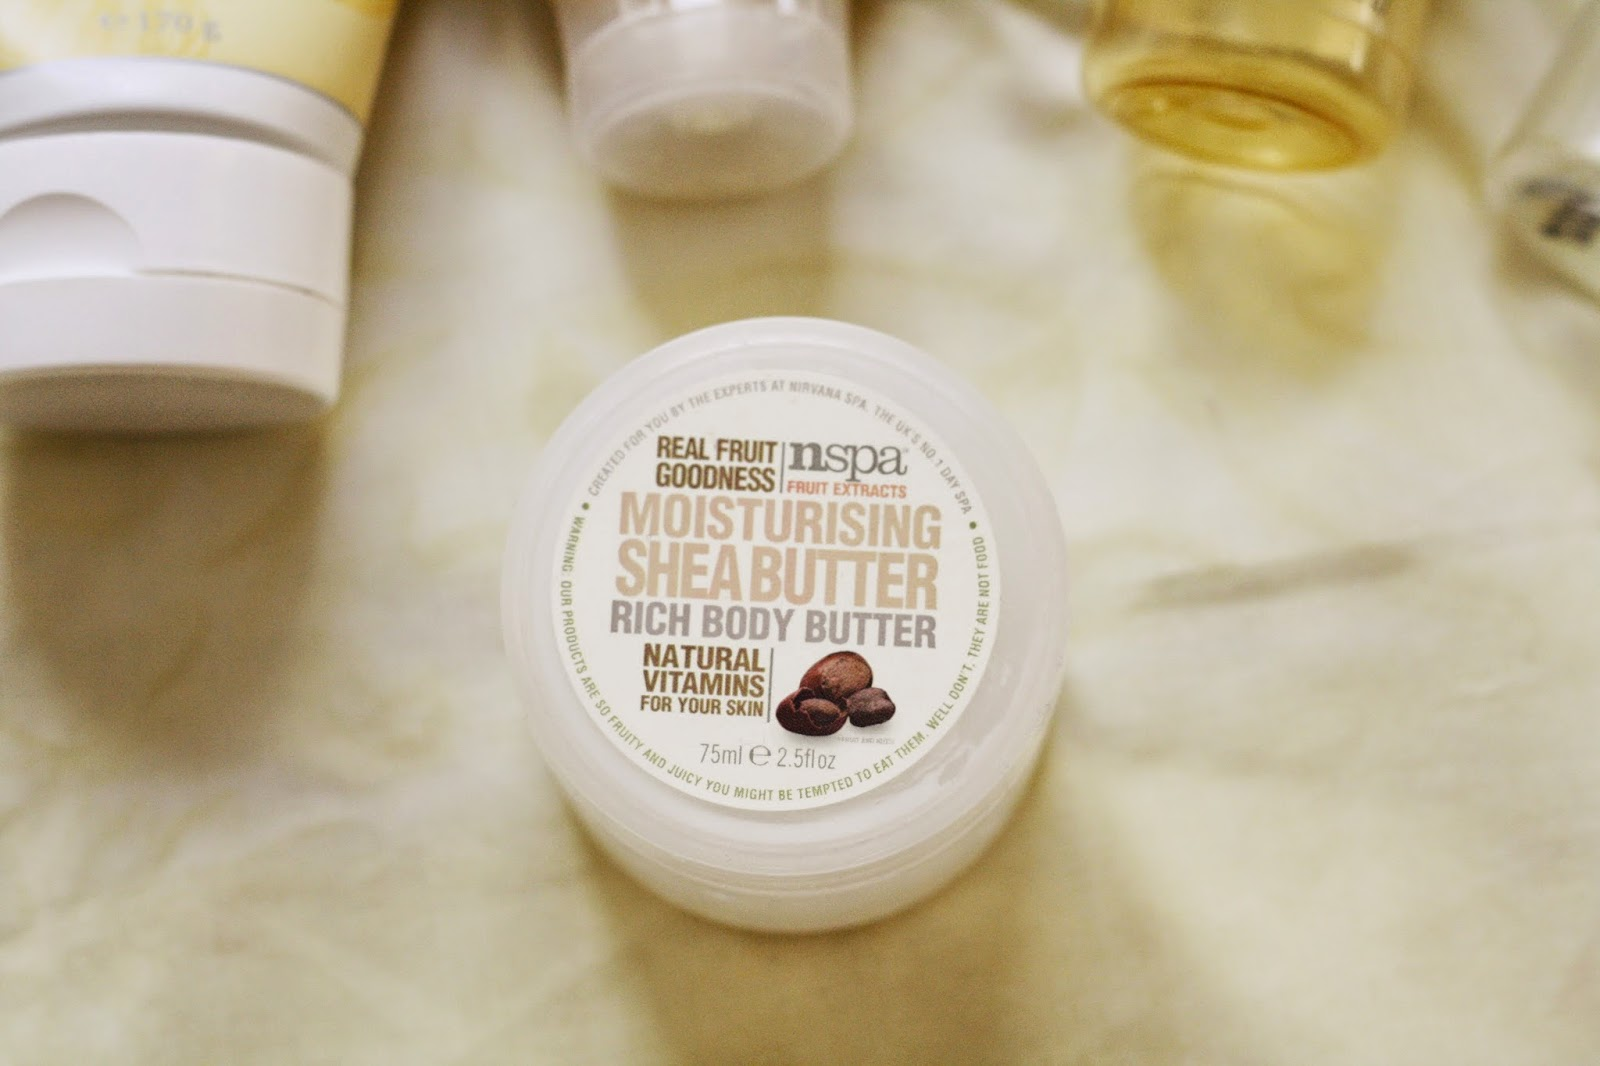 NSpa Body Butter Review